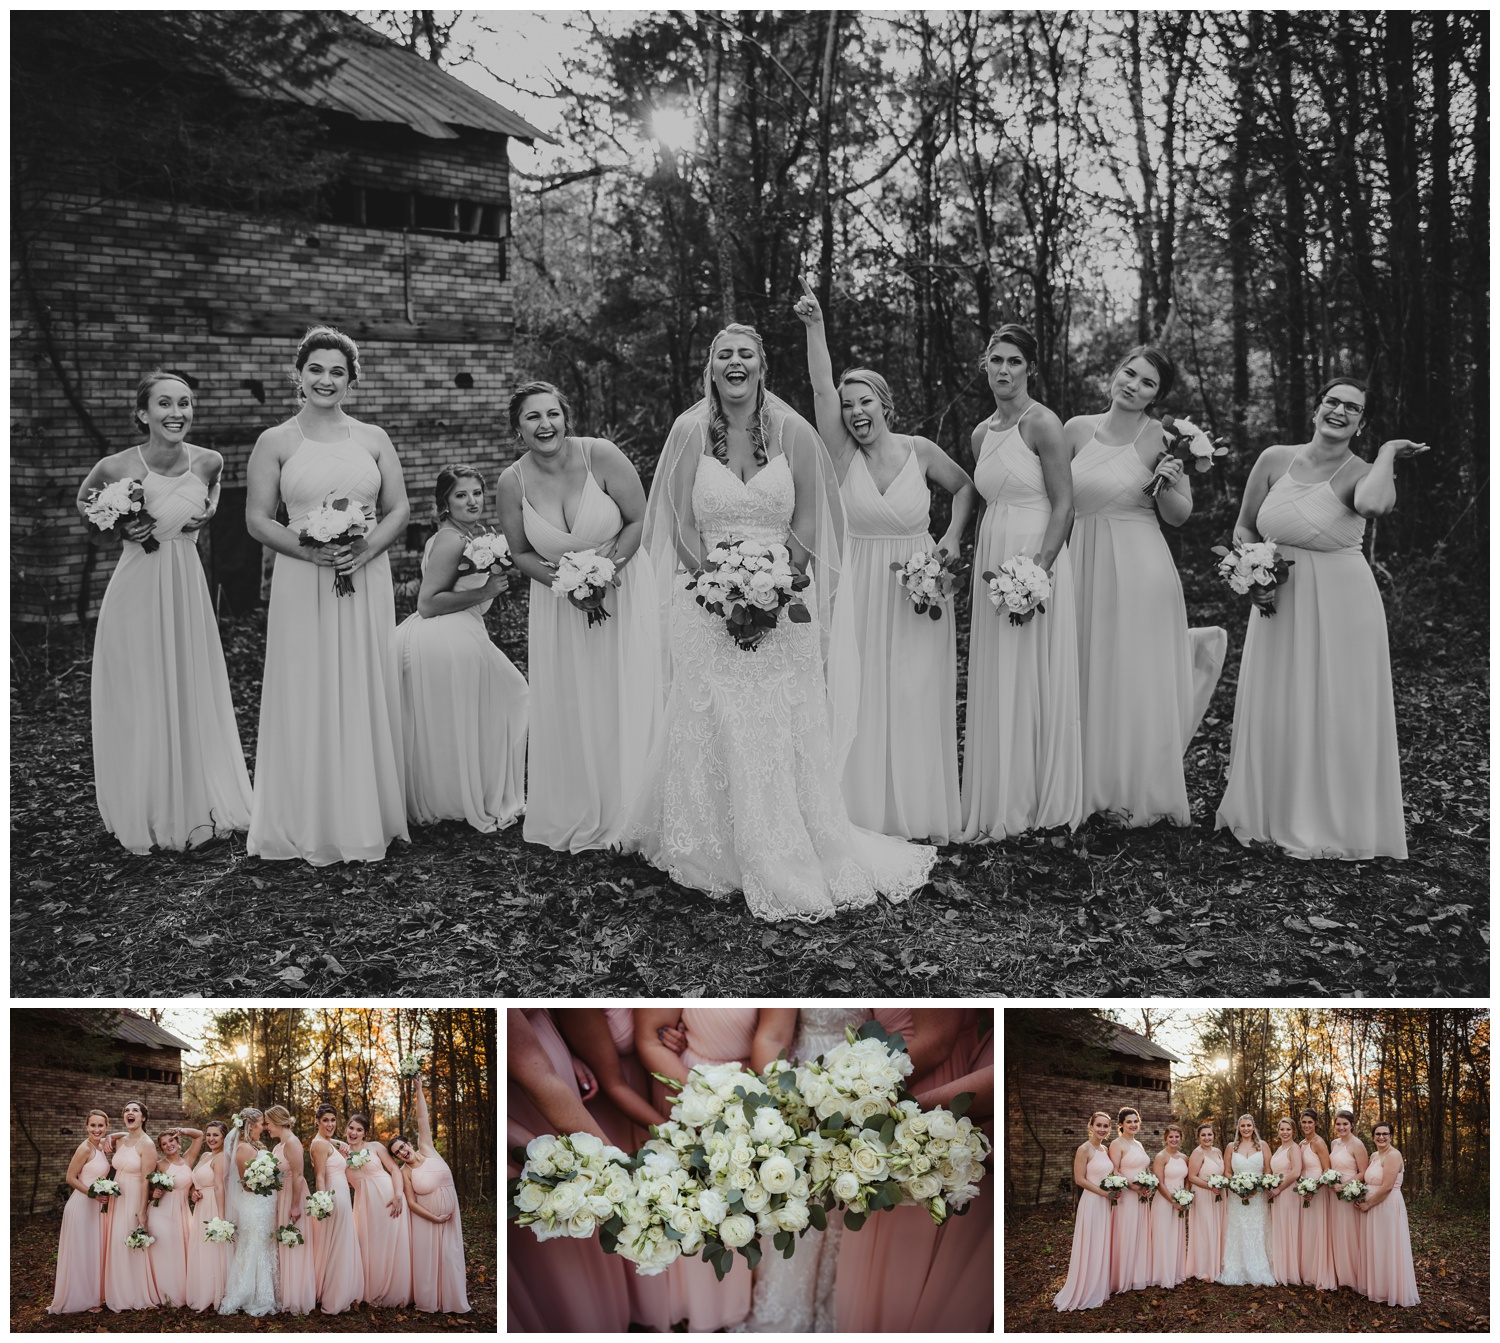 The bride poses with her bridal party in the woods after their wedding ceremony at The Warren Estate, images by Rose Trail Images of Rolesville, NC.